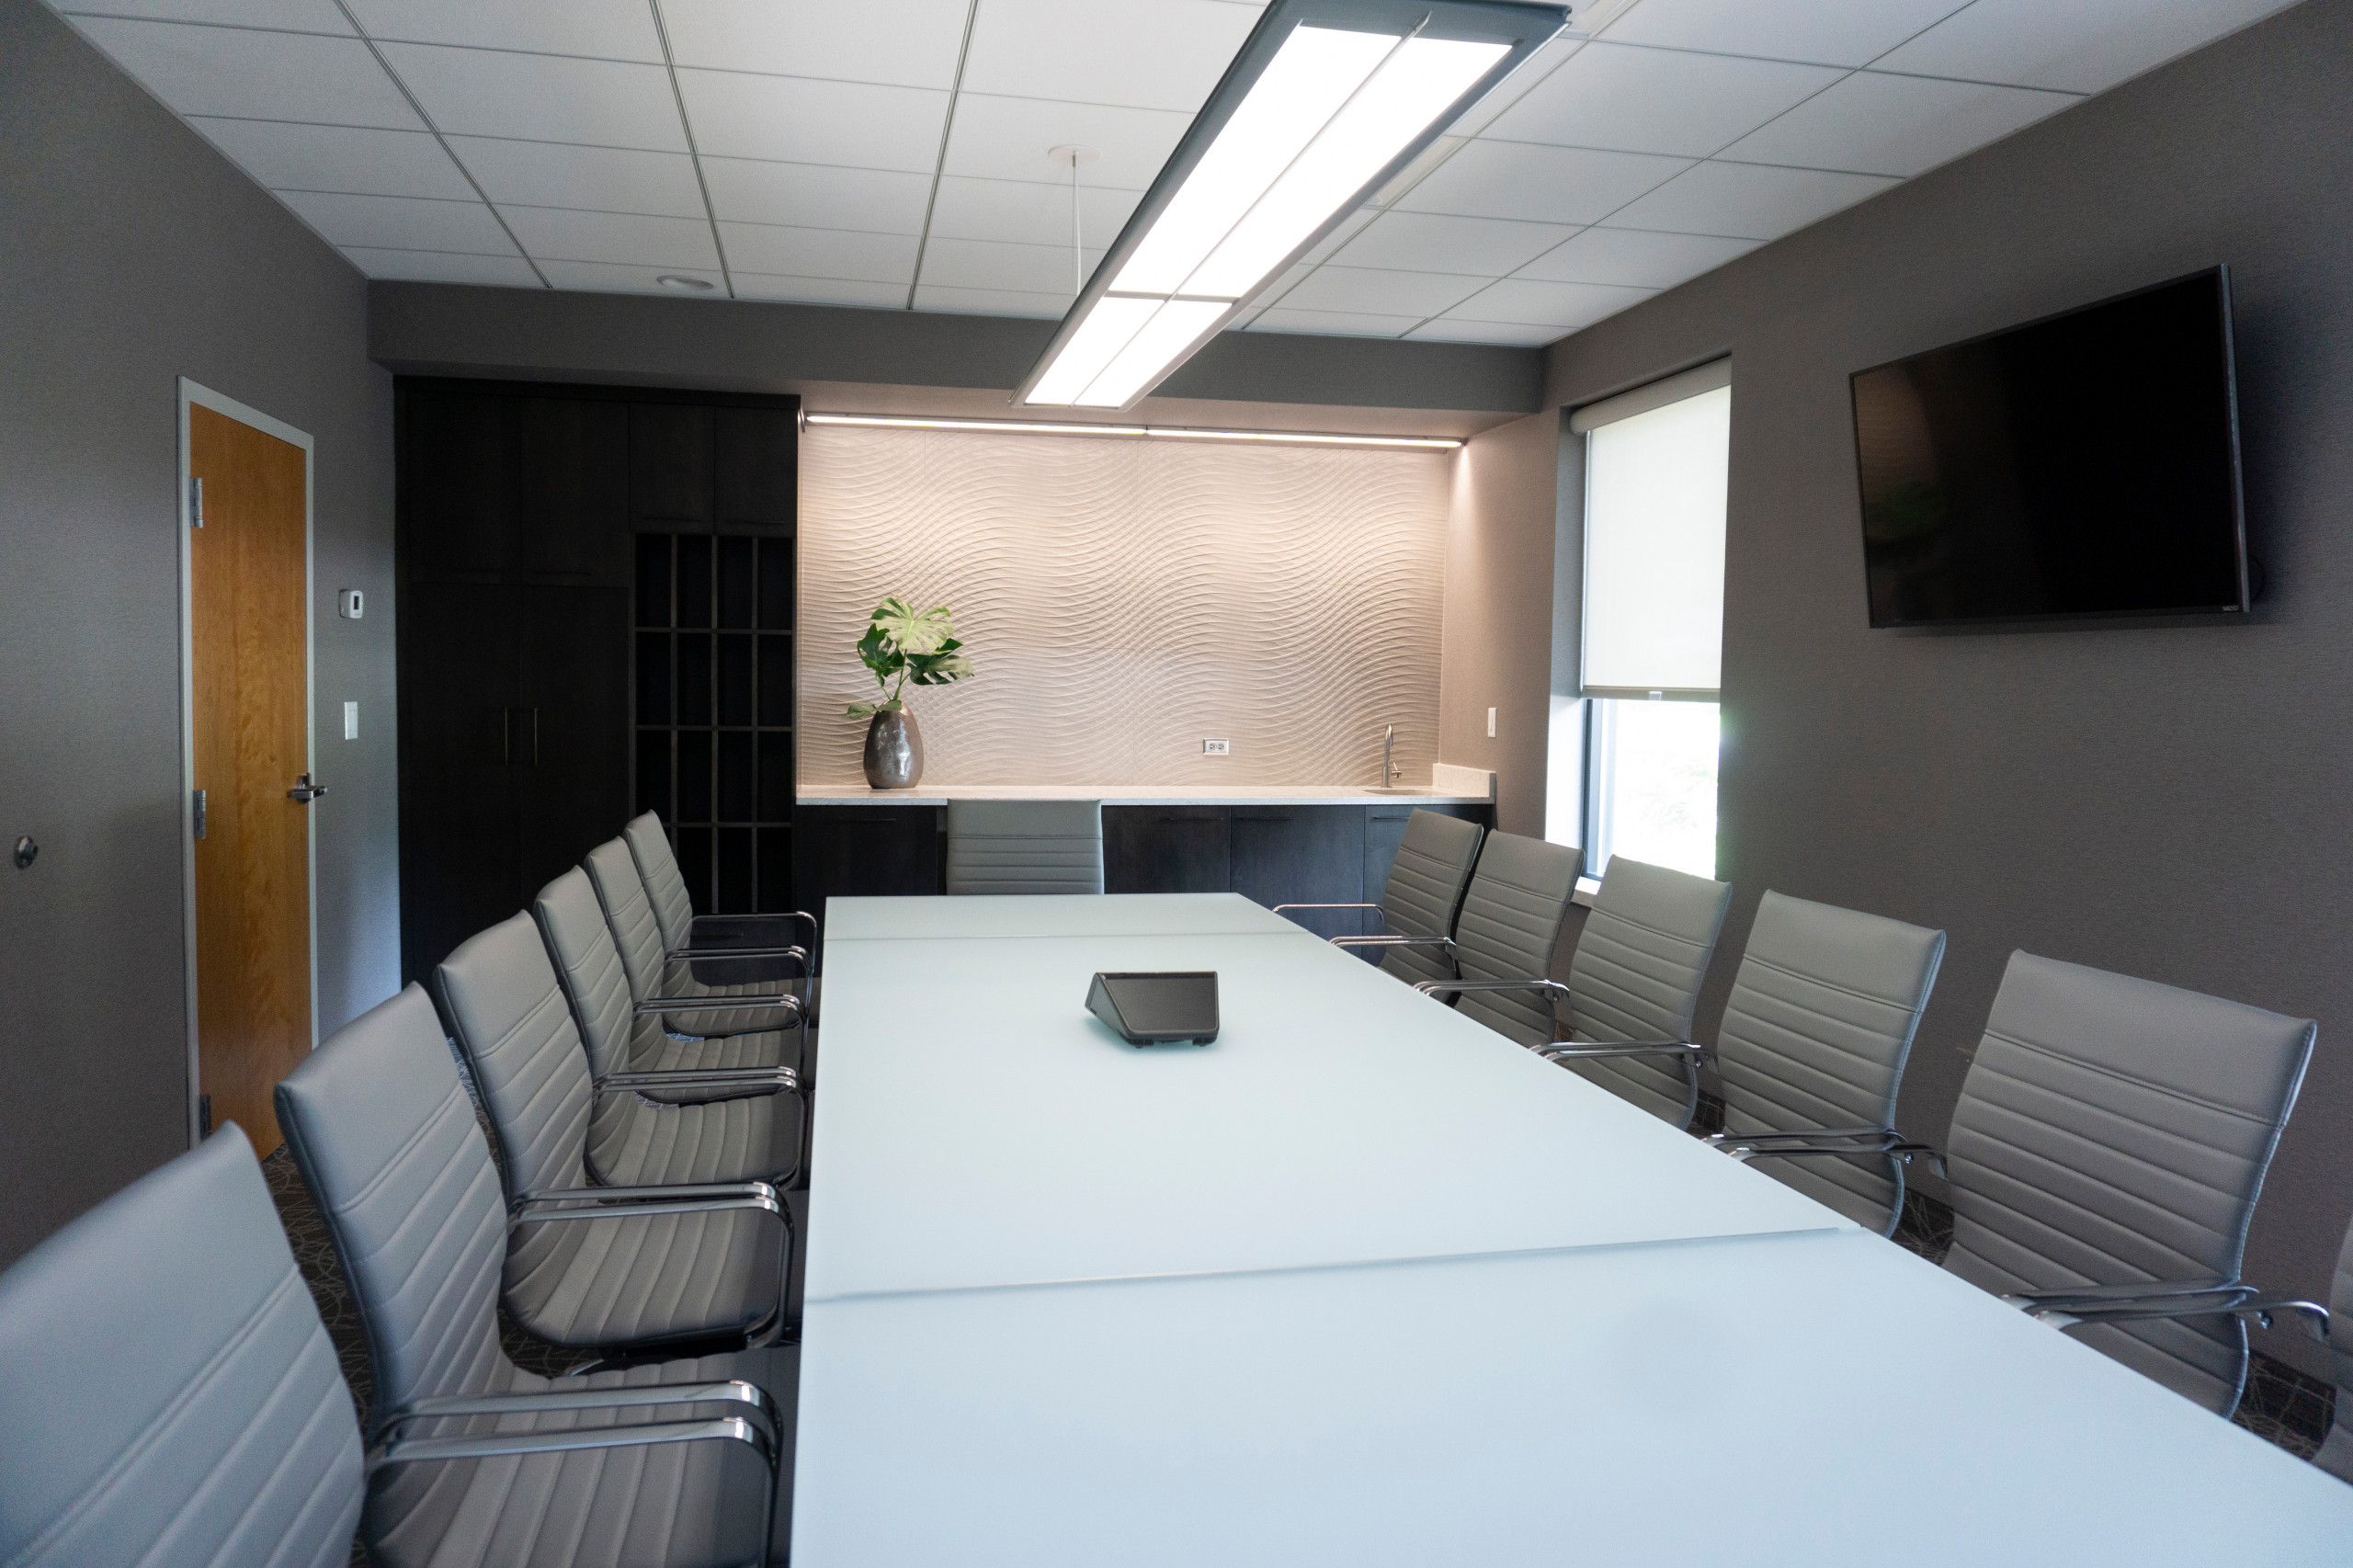 Healthcare Conference Room